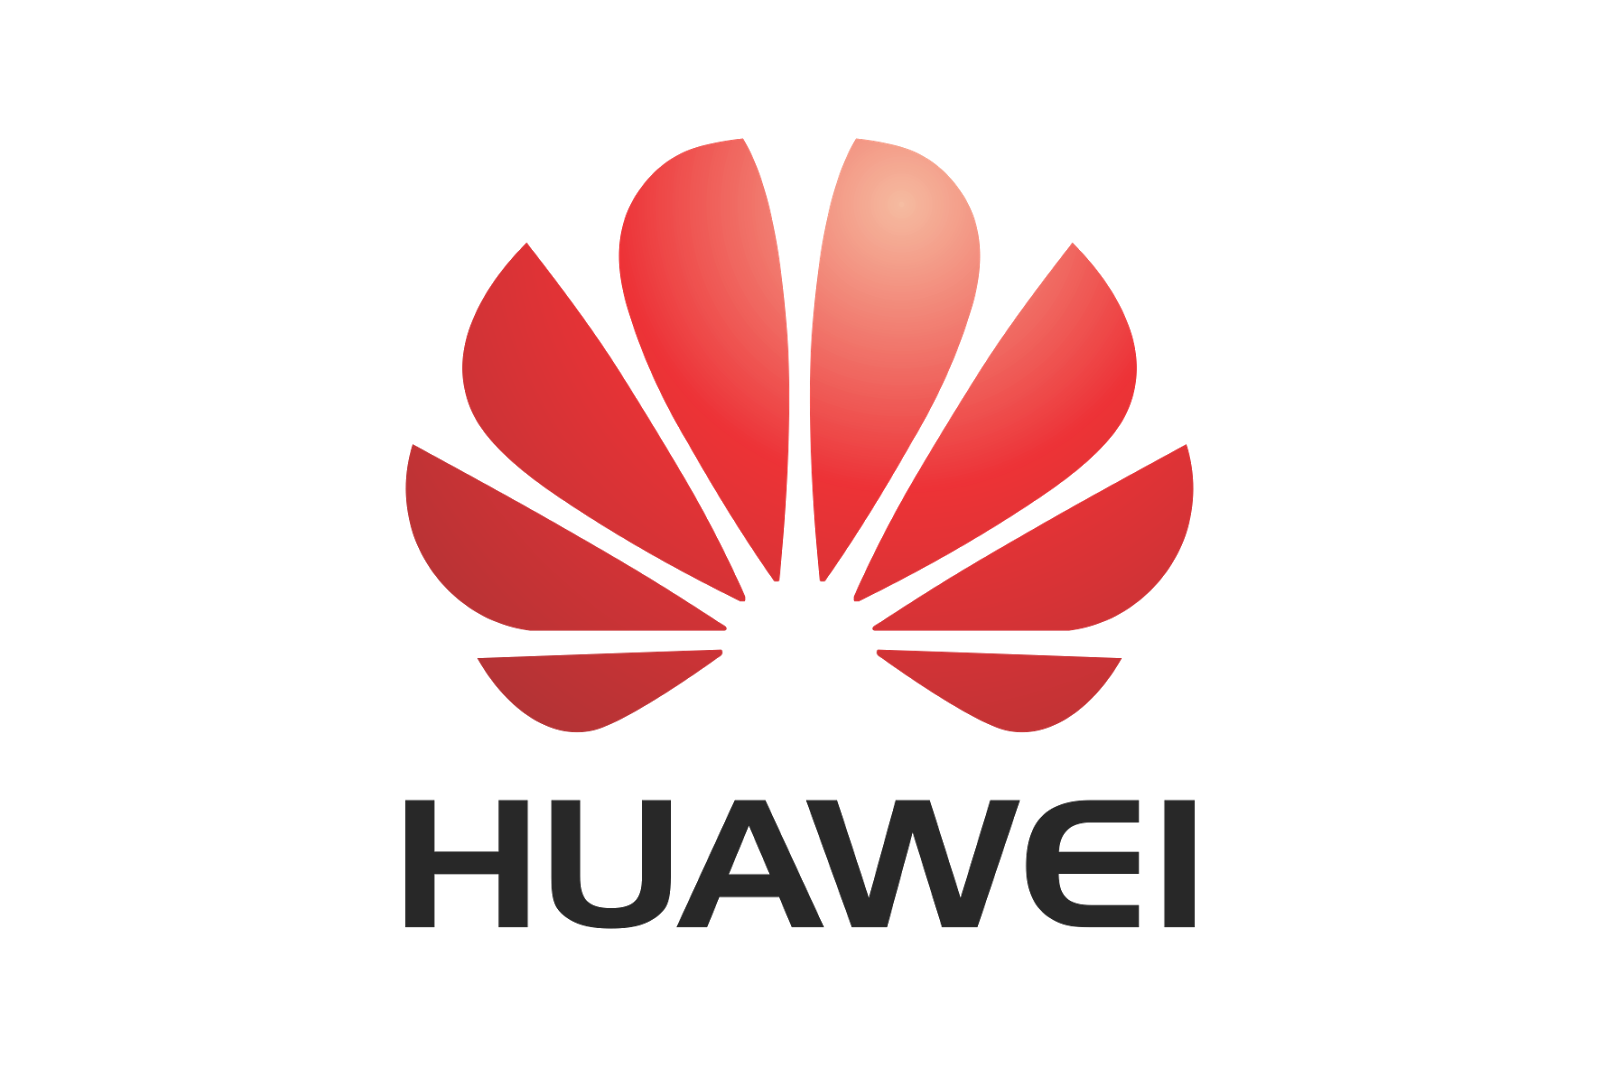 huawei logo communication #6990